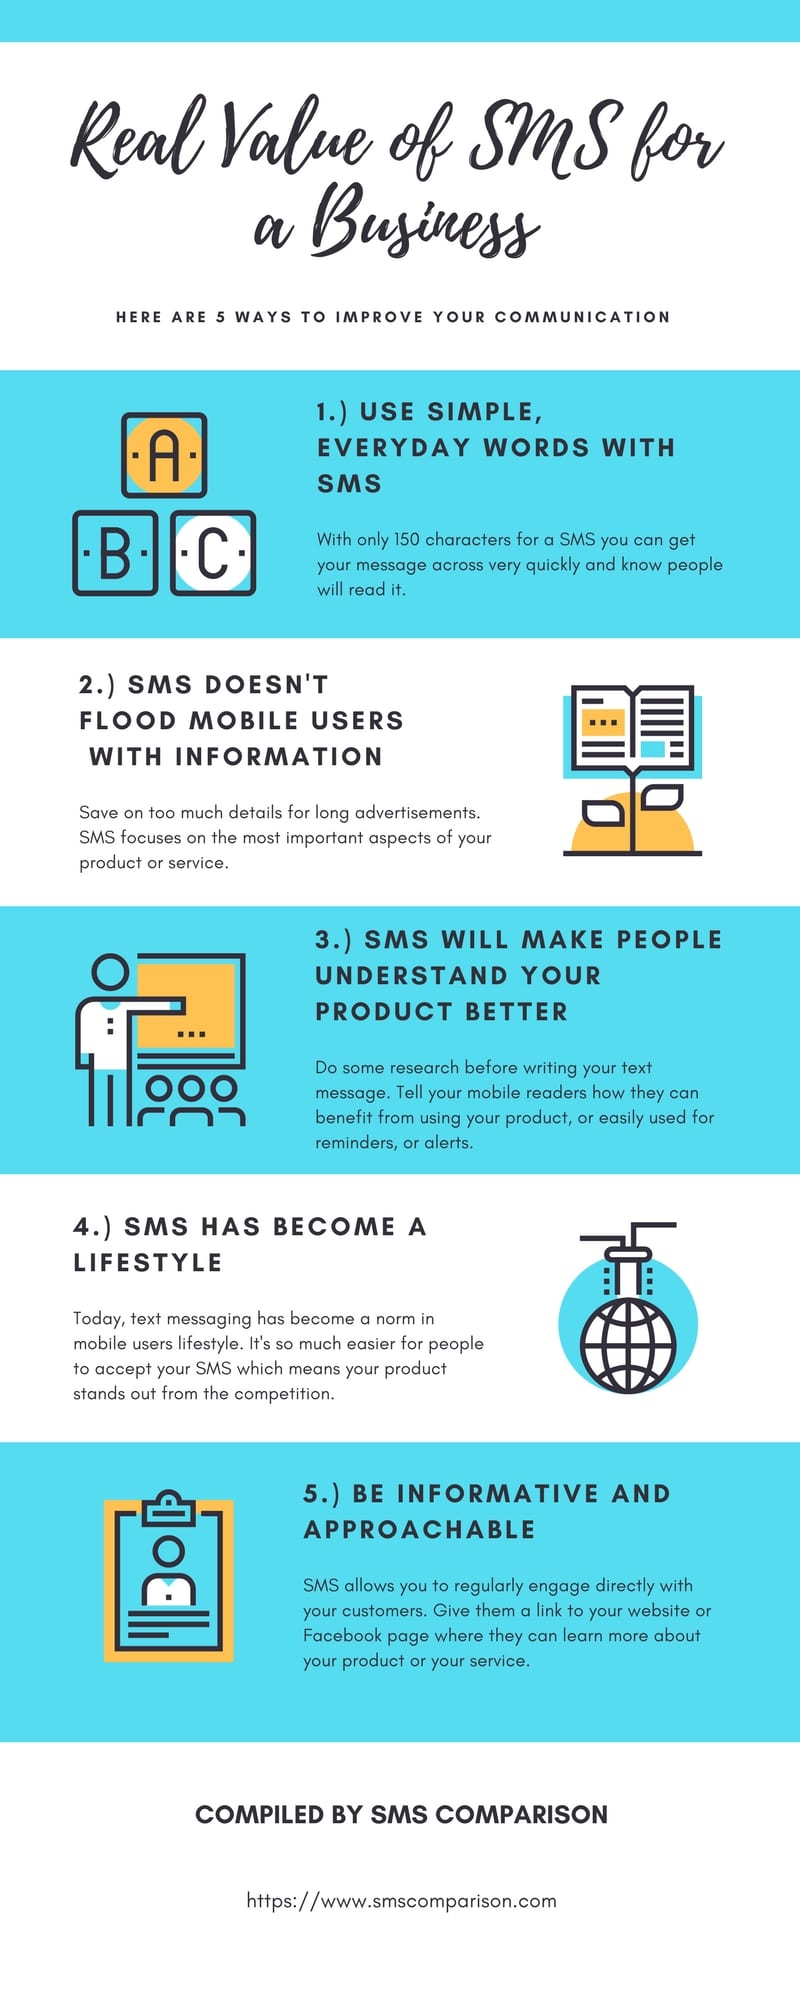 Real Value of SMS for a Business